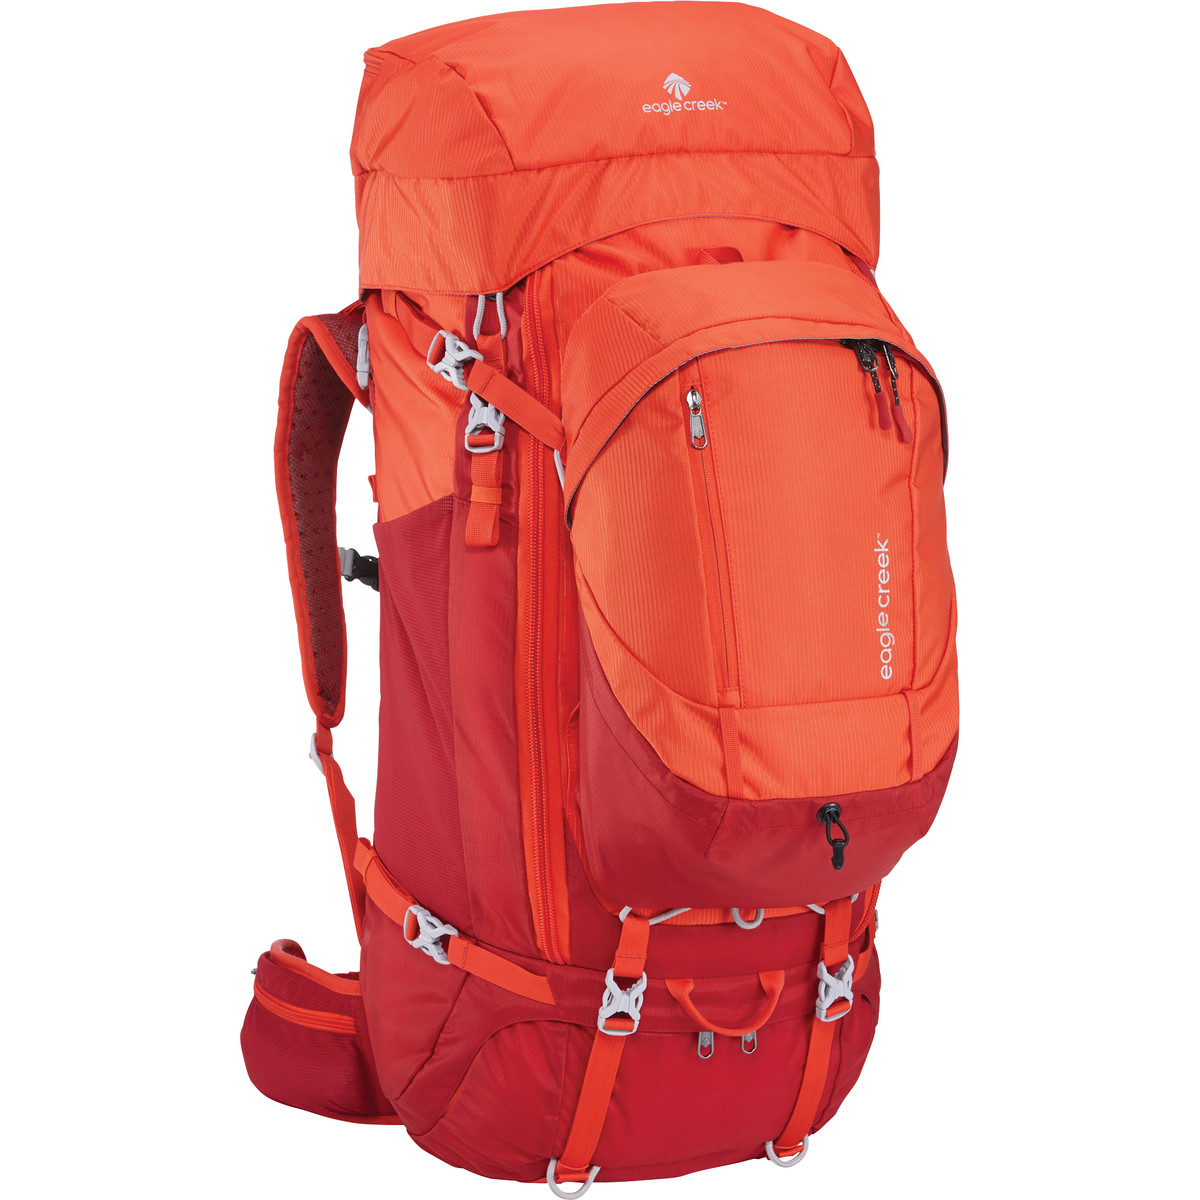 photo: Eagle Creek Men's Deviate 85L Travel Backpack expedition pack (70l+)